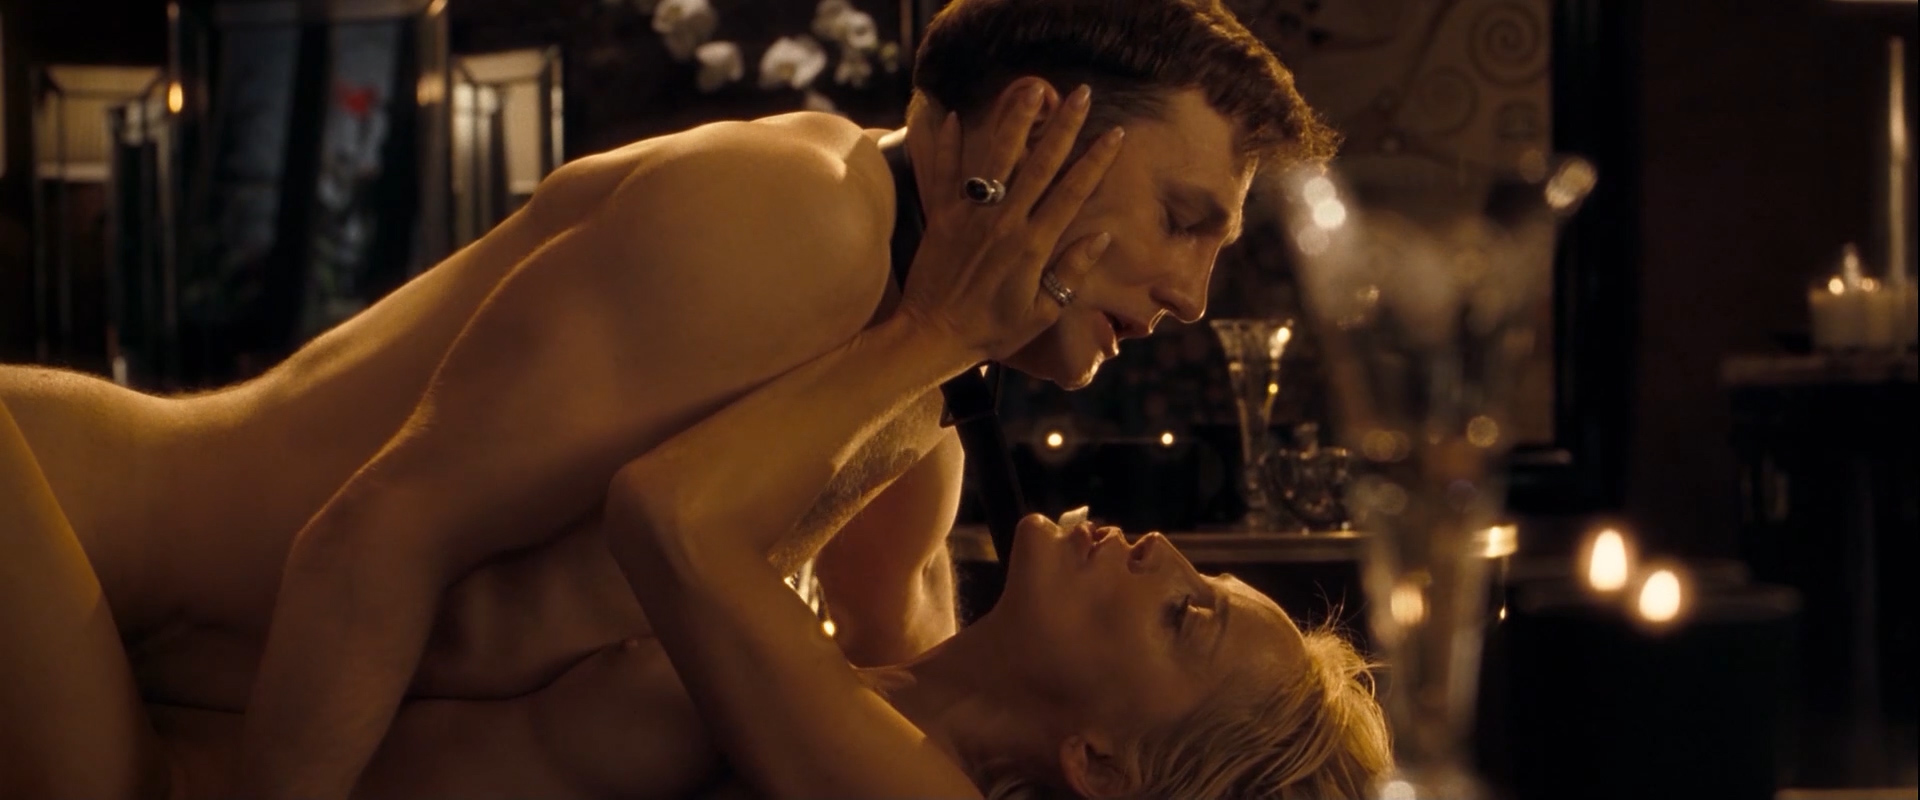 Sharon Stone nude topless sex and Flora Montgomery nude - Basic Instinct 2 (2006) hd1080p (15)